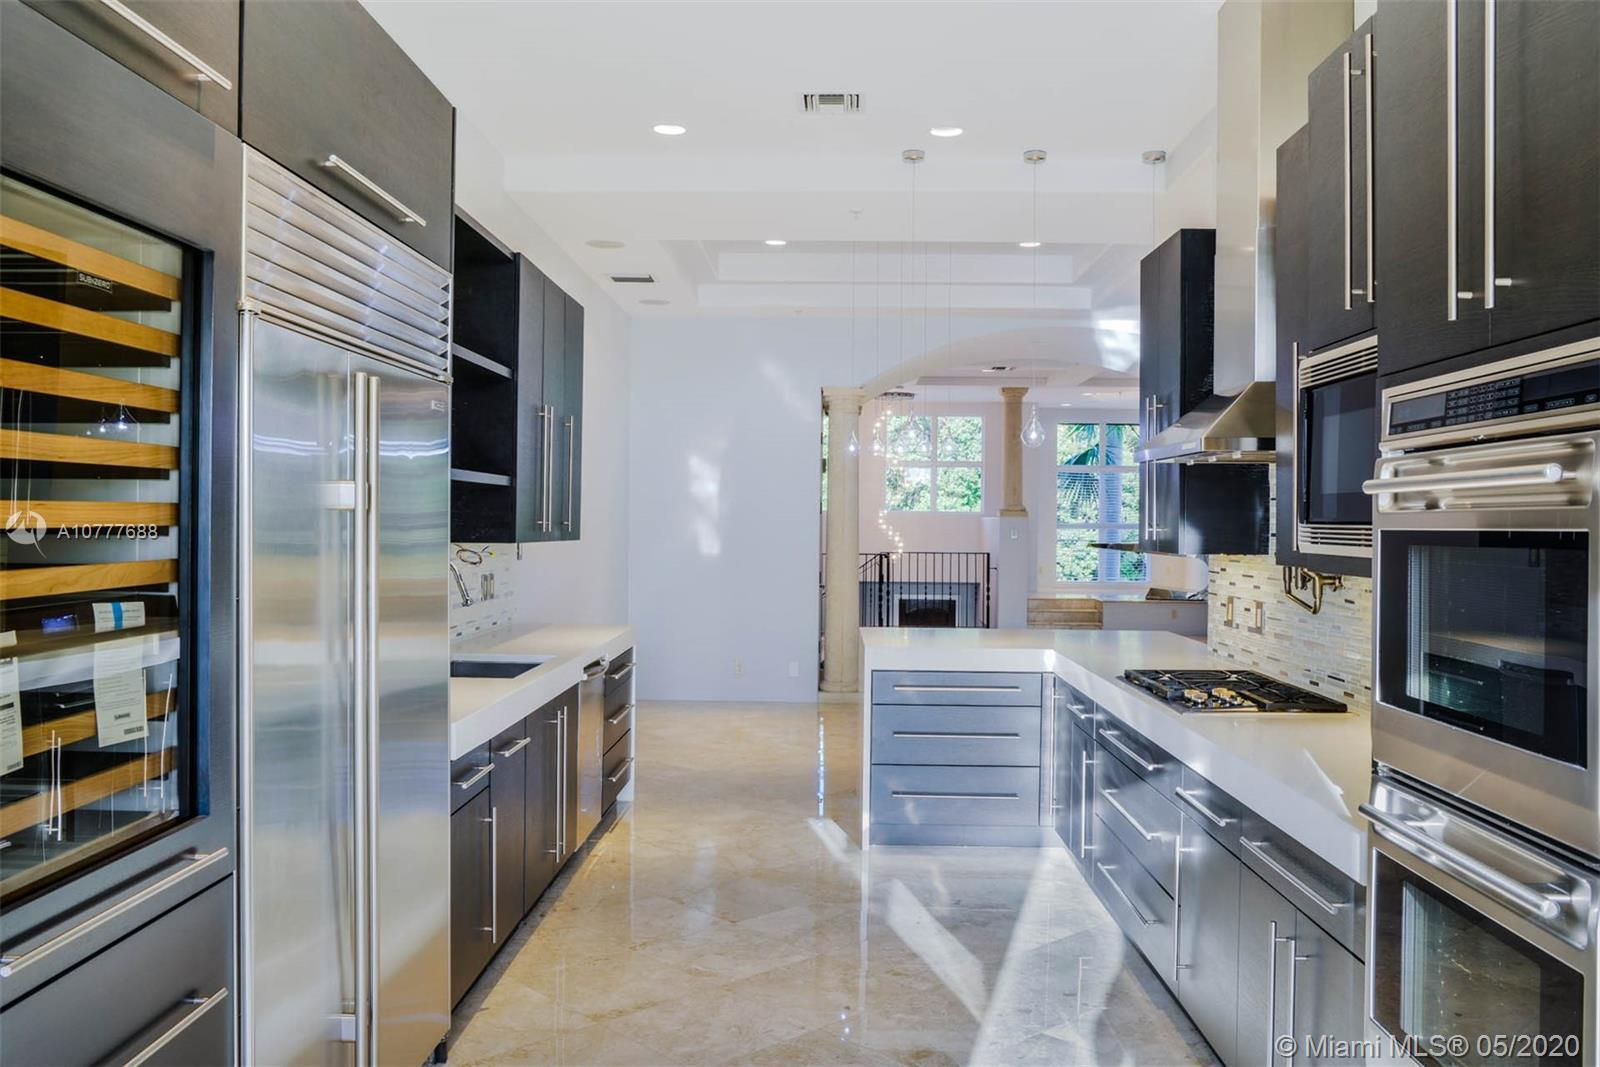 Beautiful Townhouse in a great downtown Boca Raton location. Marble and wood floors, wolf and sub ze